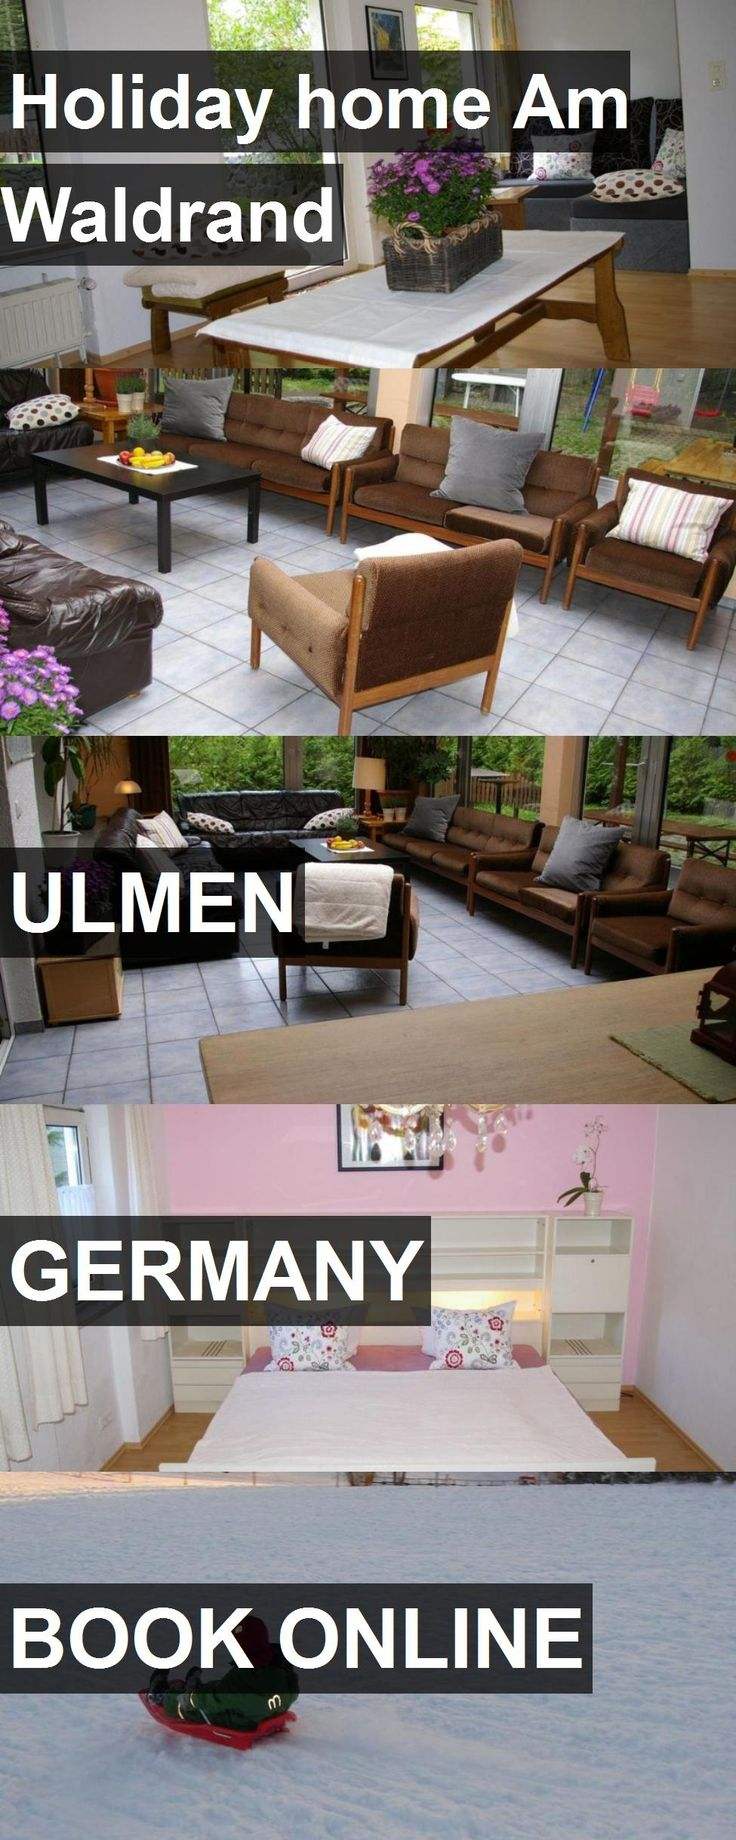 Hotel Holiday home Am Waldrand in Ulmen, Germany. For more information, photos, reviews and best prices please follow the link. #Germany #Ulmen #travel #vacation #hotel